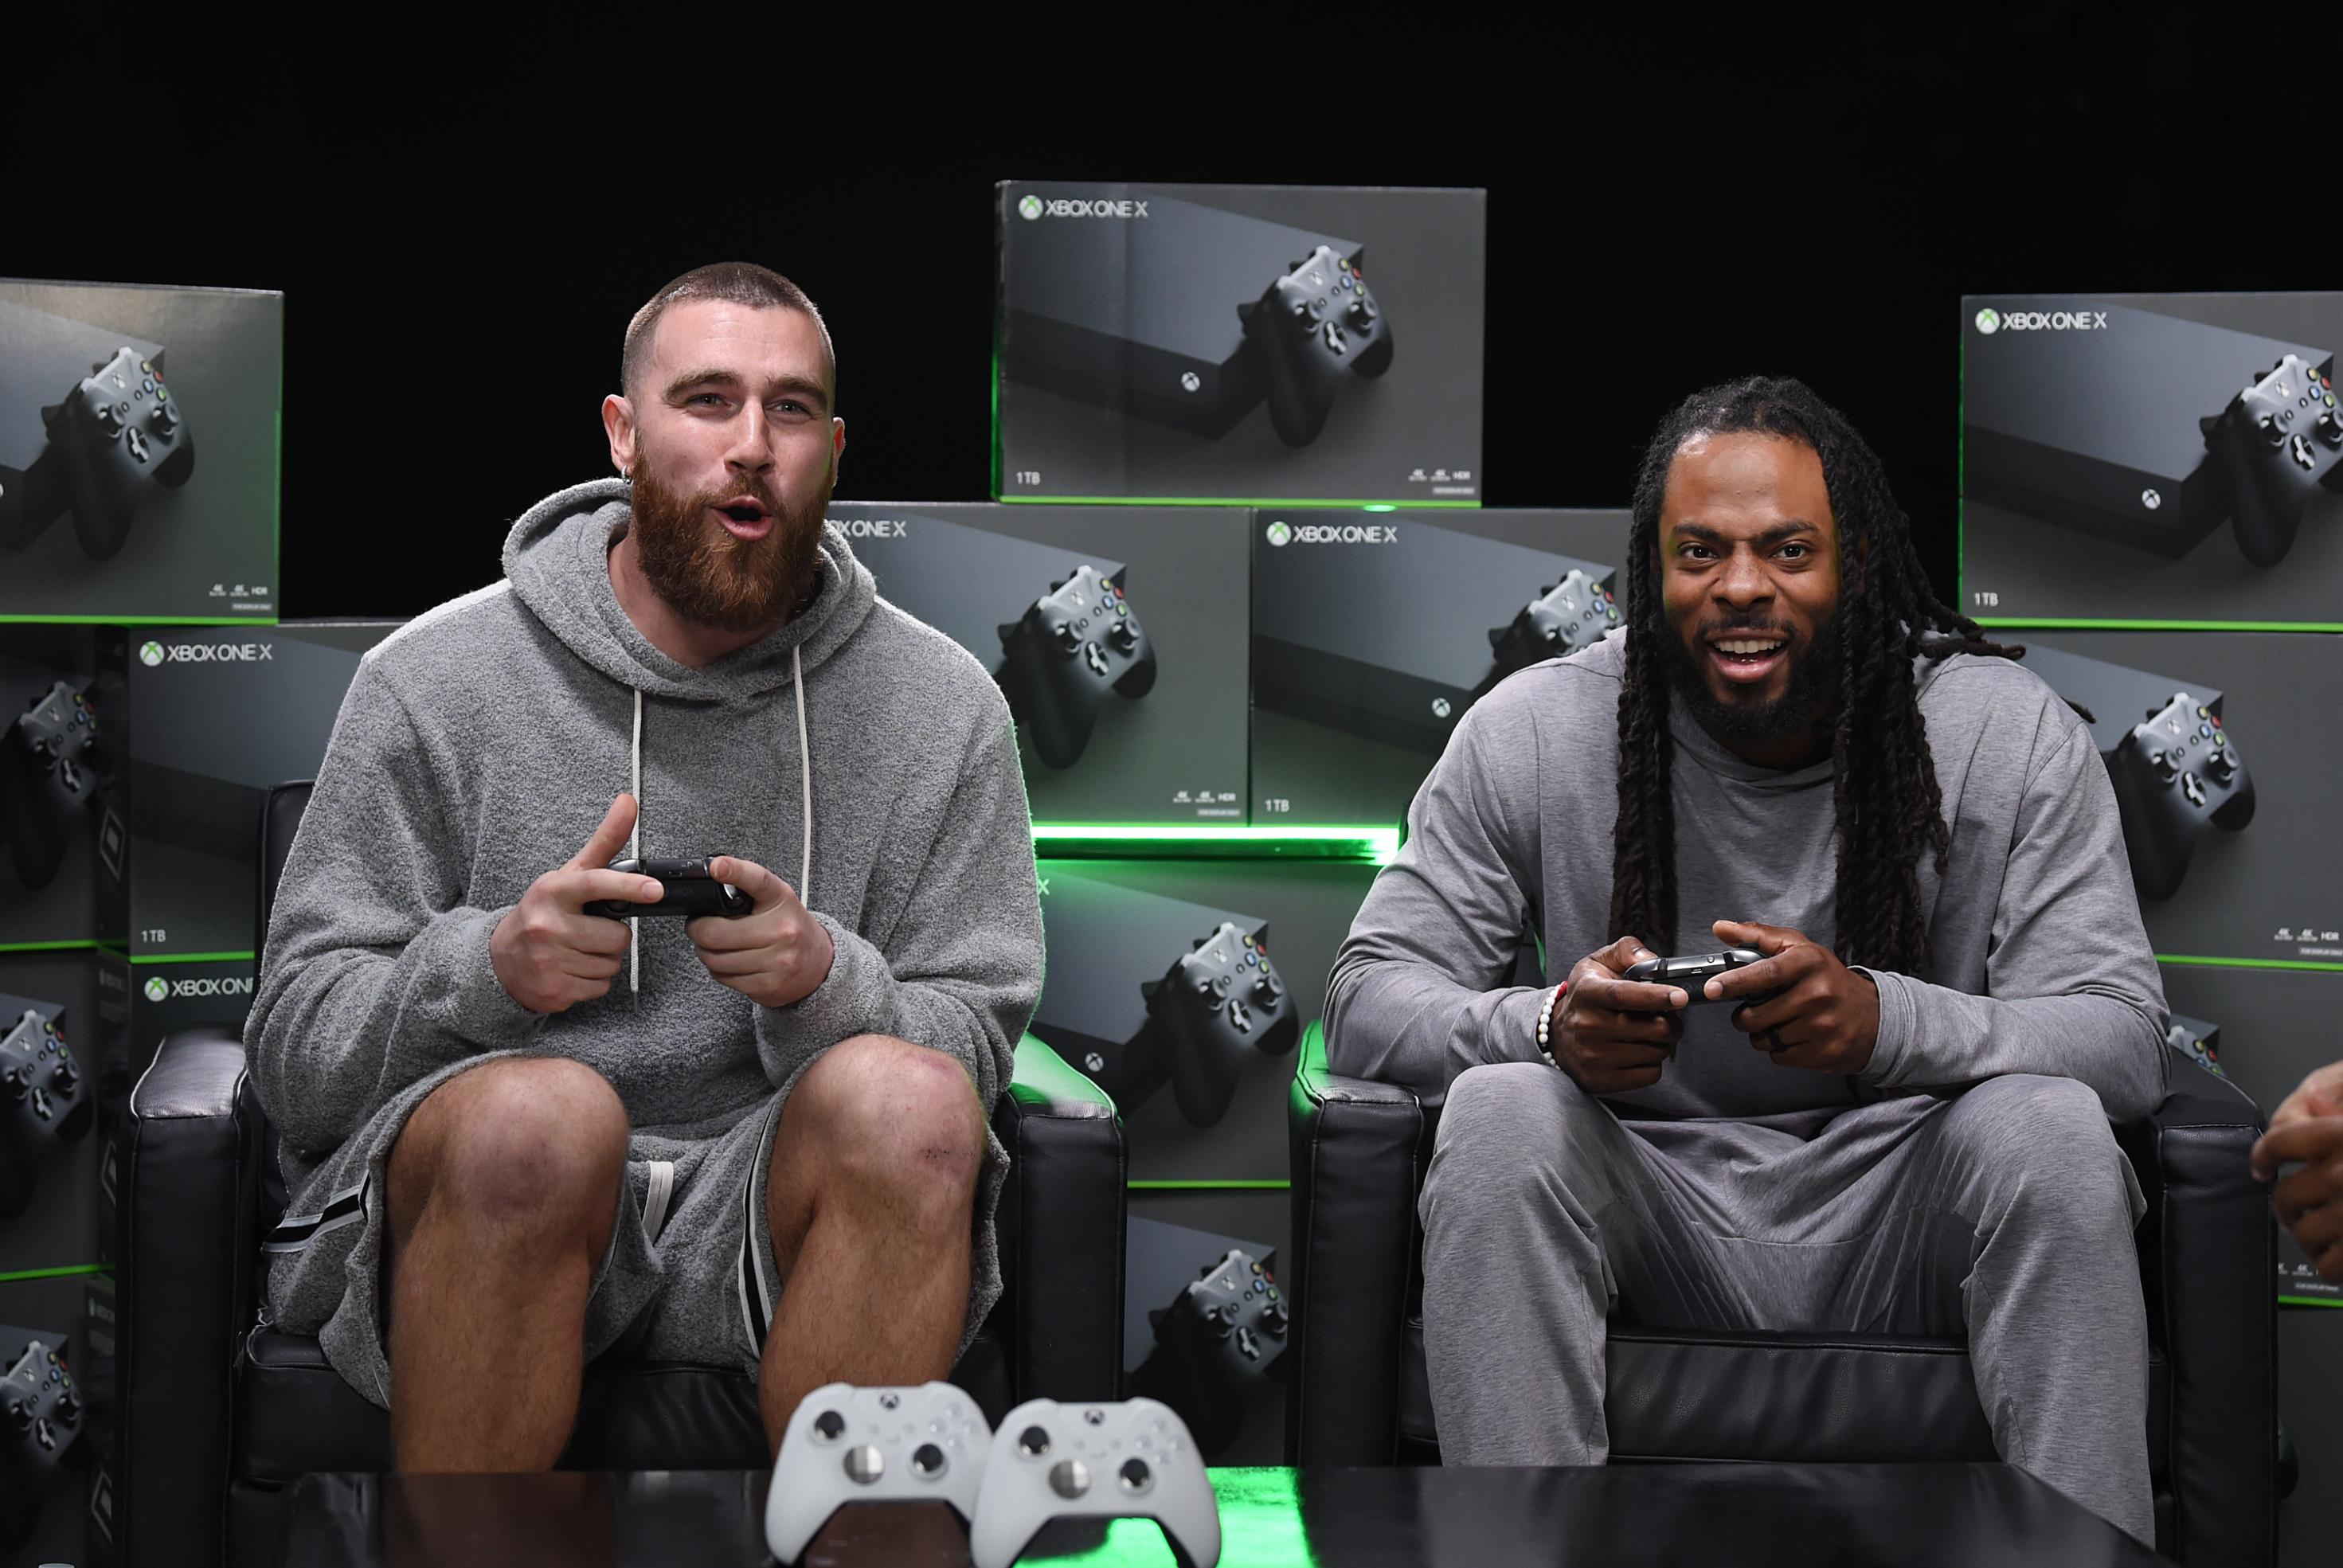 The 12-hour stream where celebrities and sports stars played 'Call Of Duty' for coronavirus aid